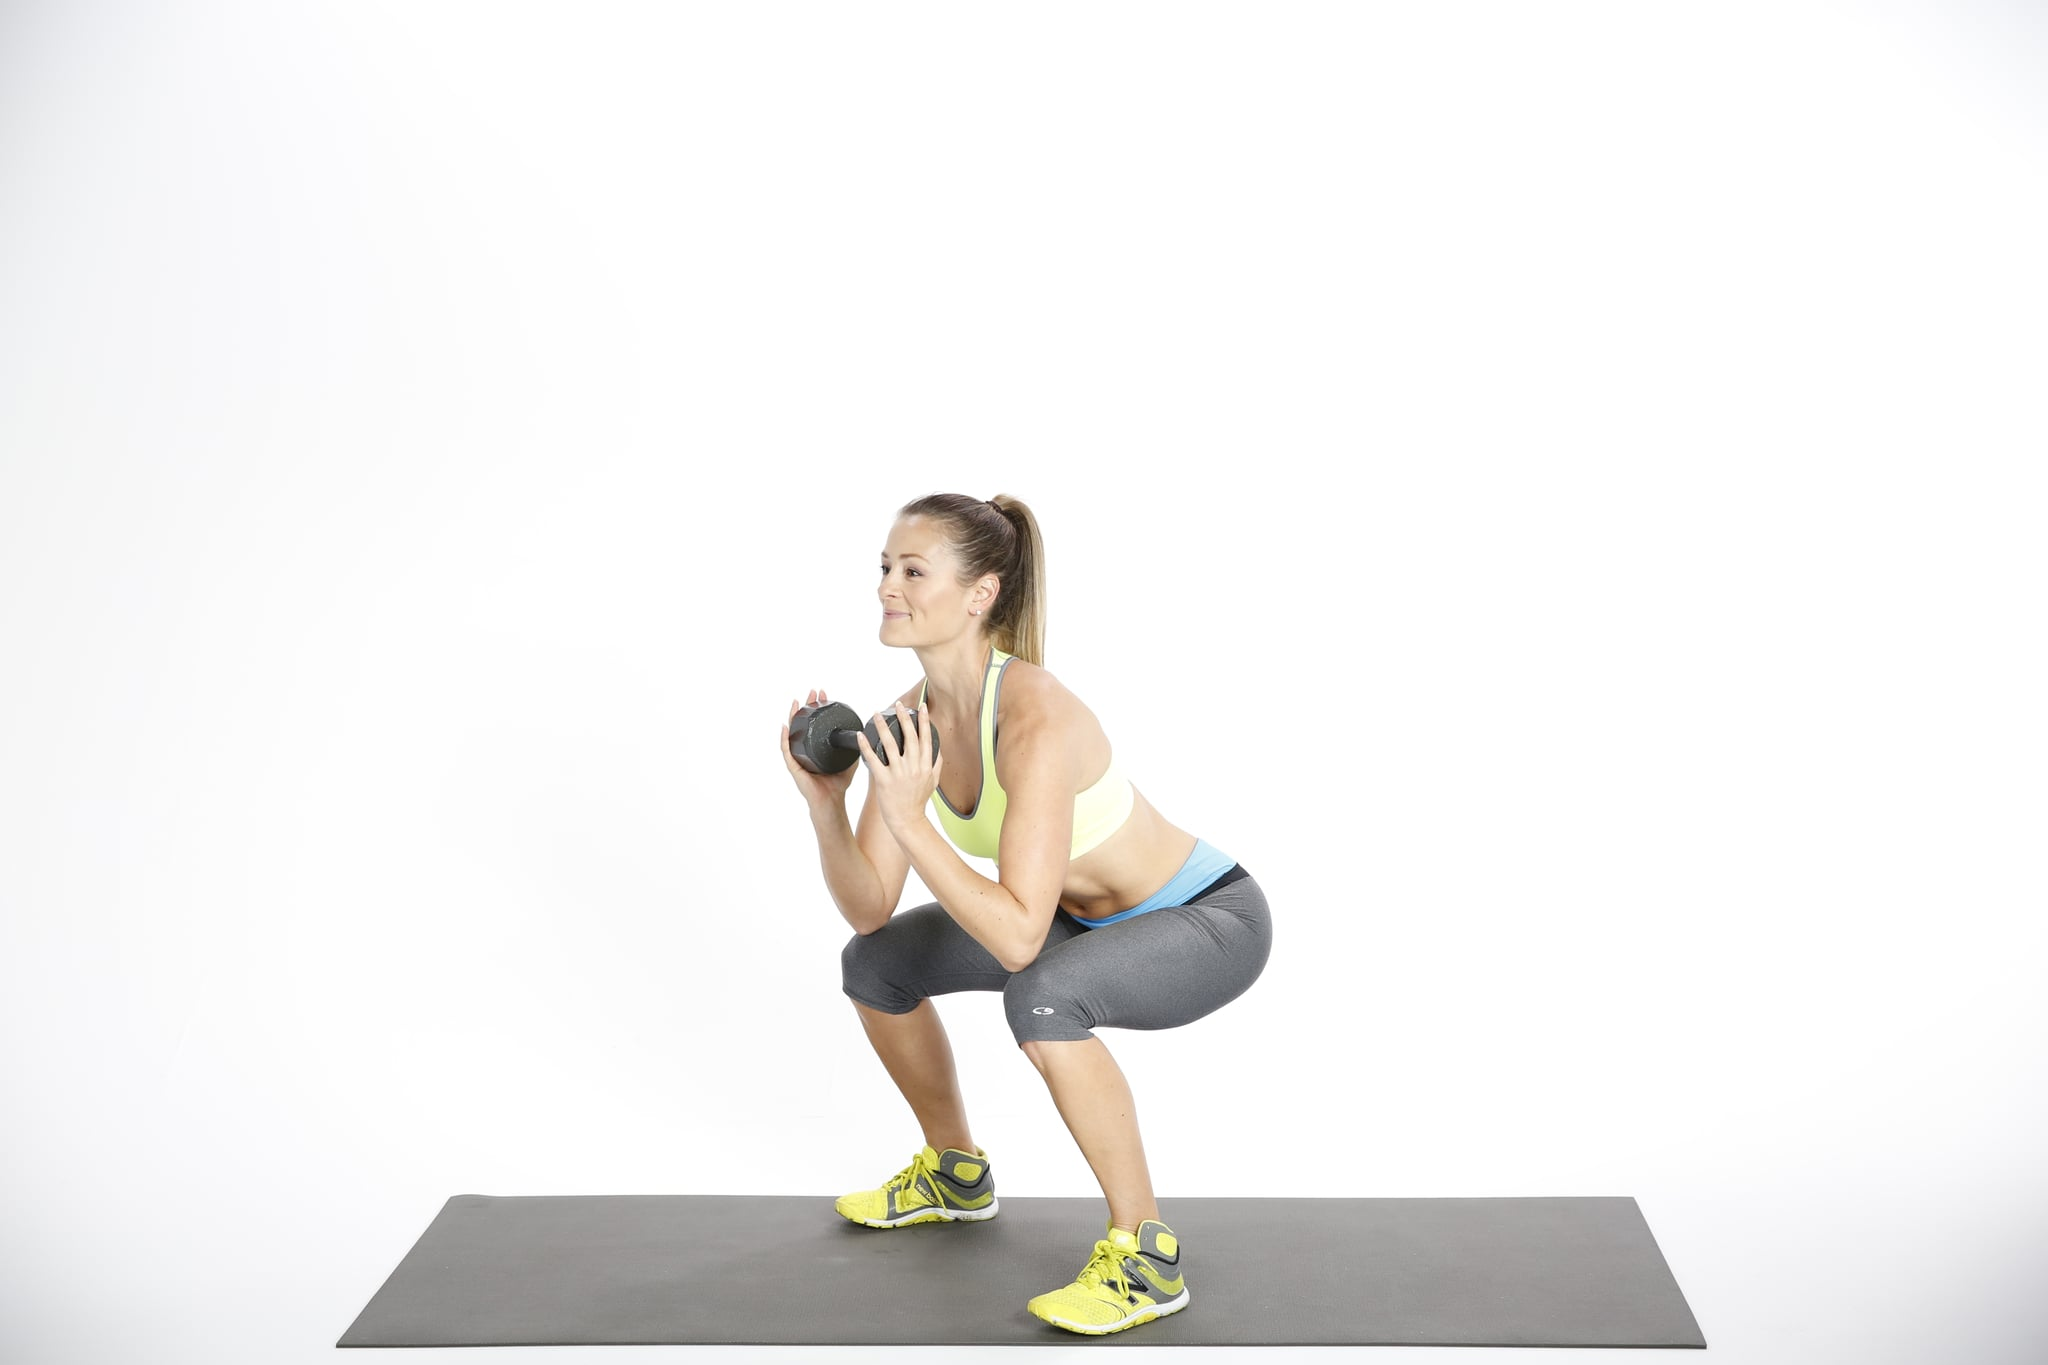 6 Killer Squat Variations That Guarantee a Better Butt